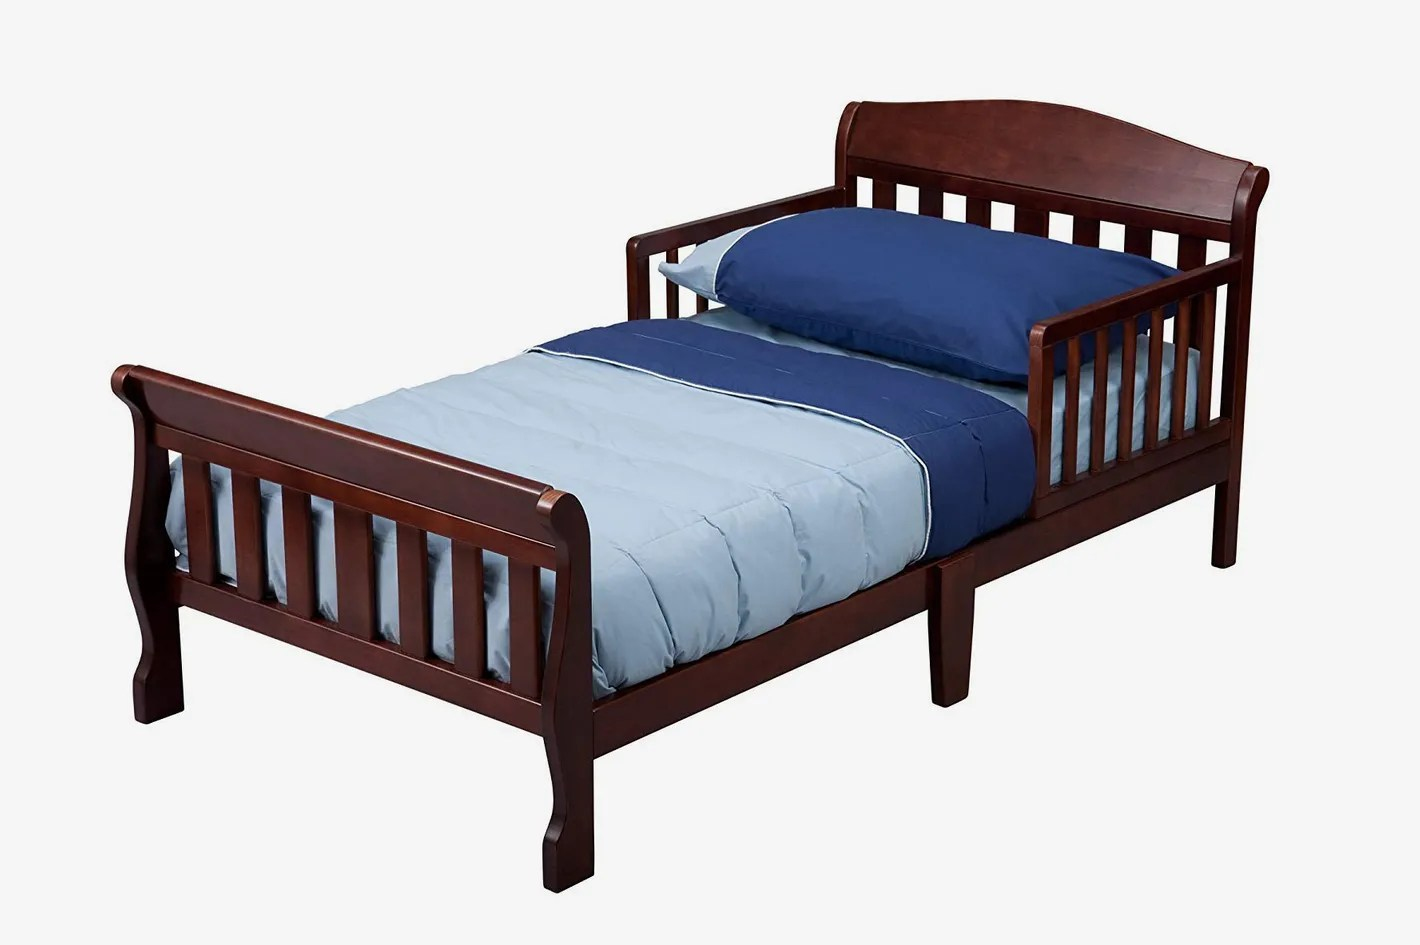 Cheap Toddler Beds Delta Children Canton Toddler Bed Cherry